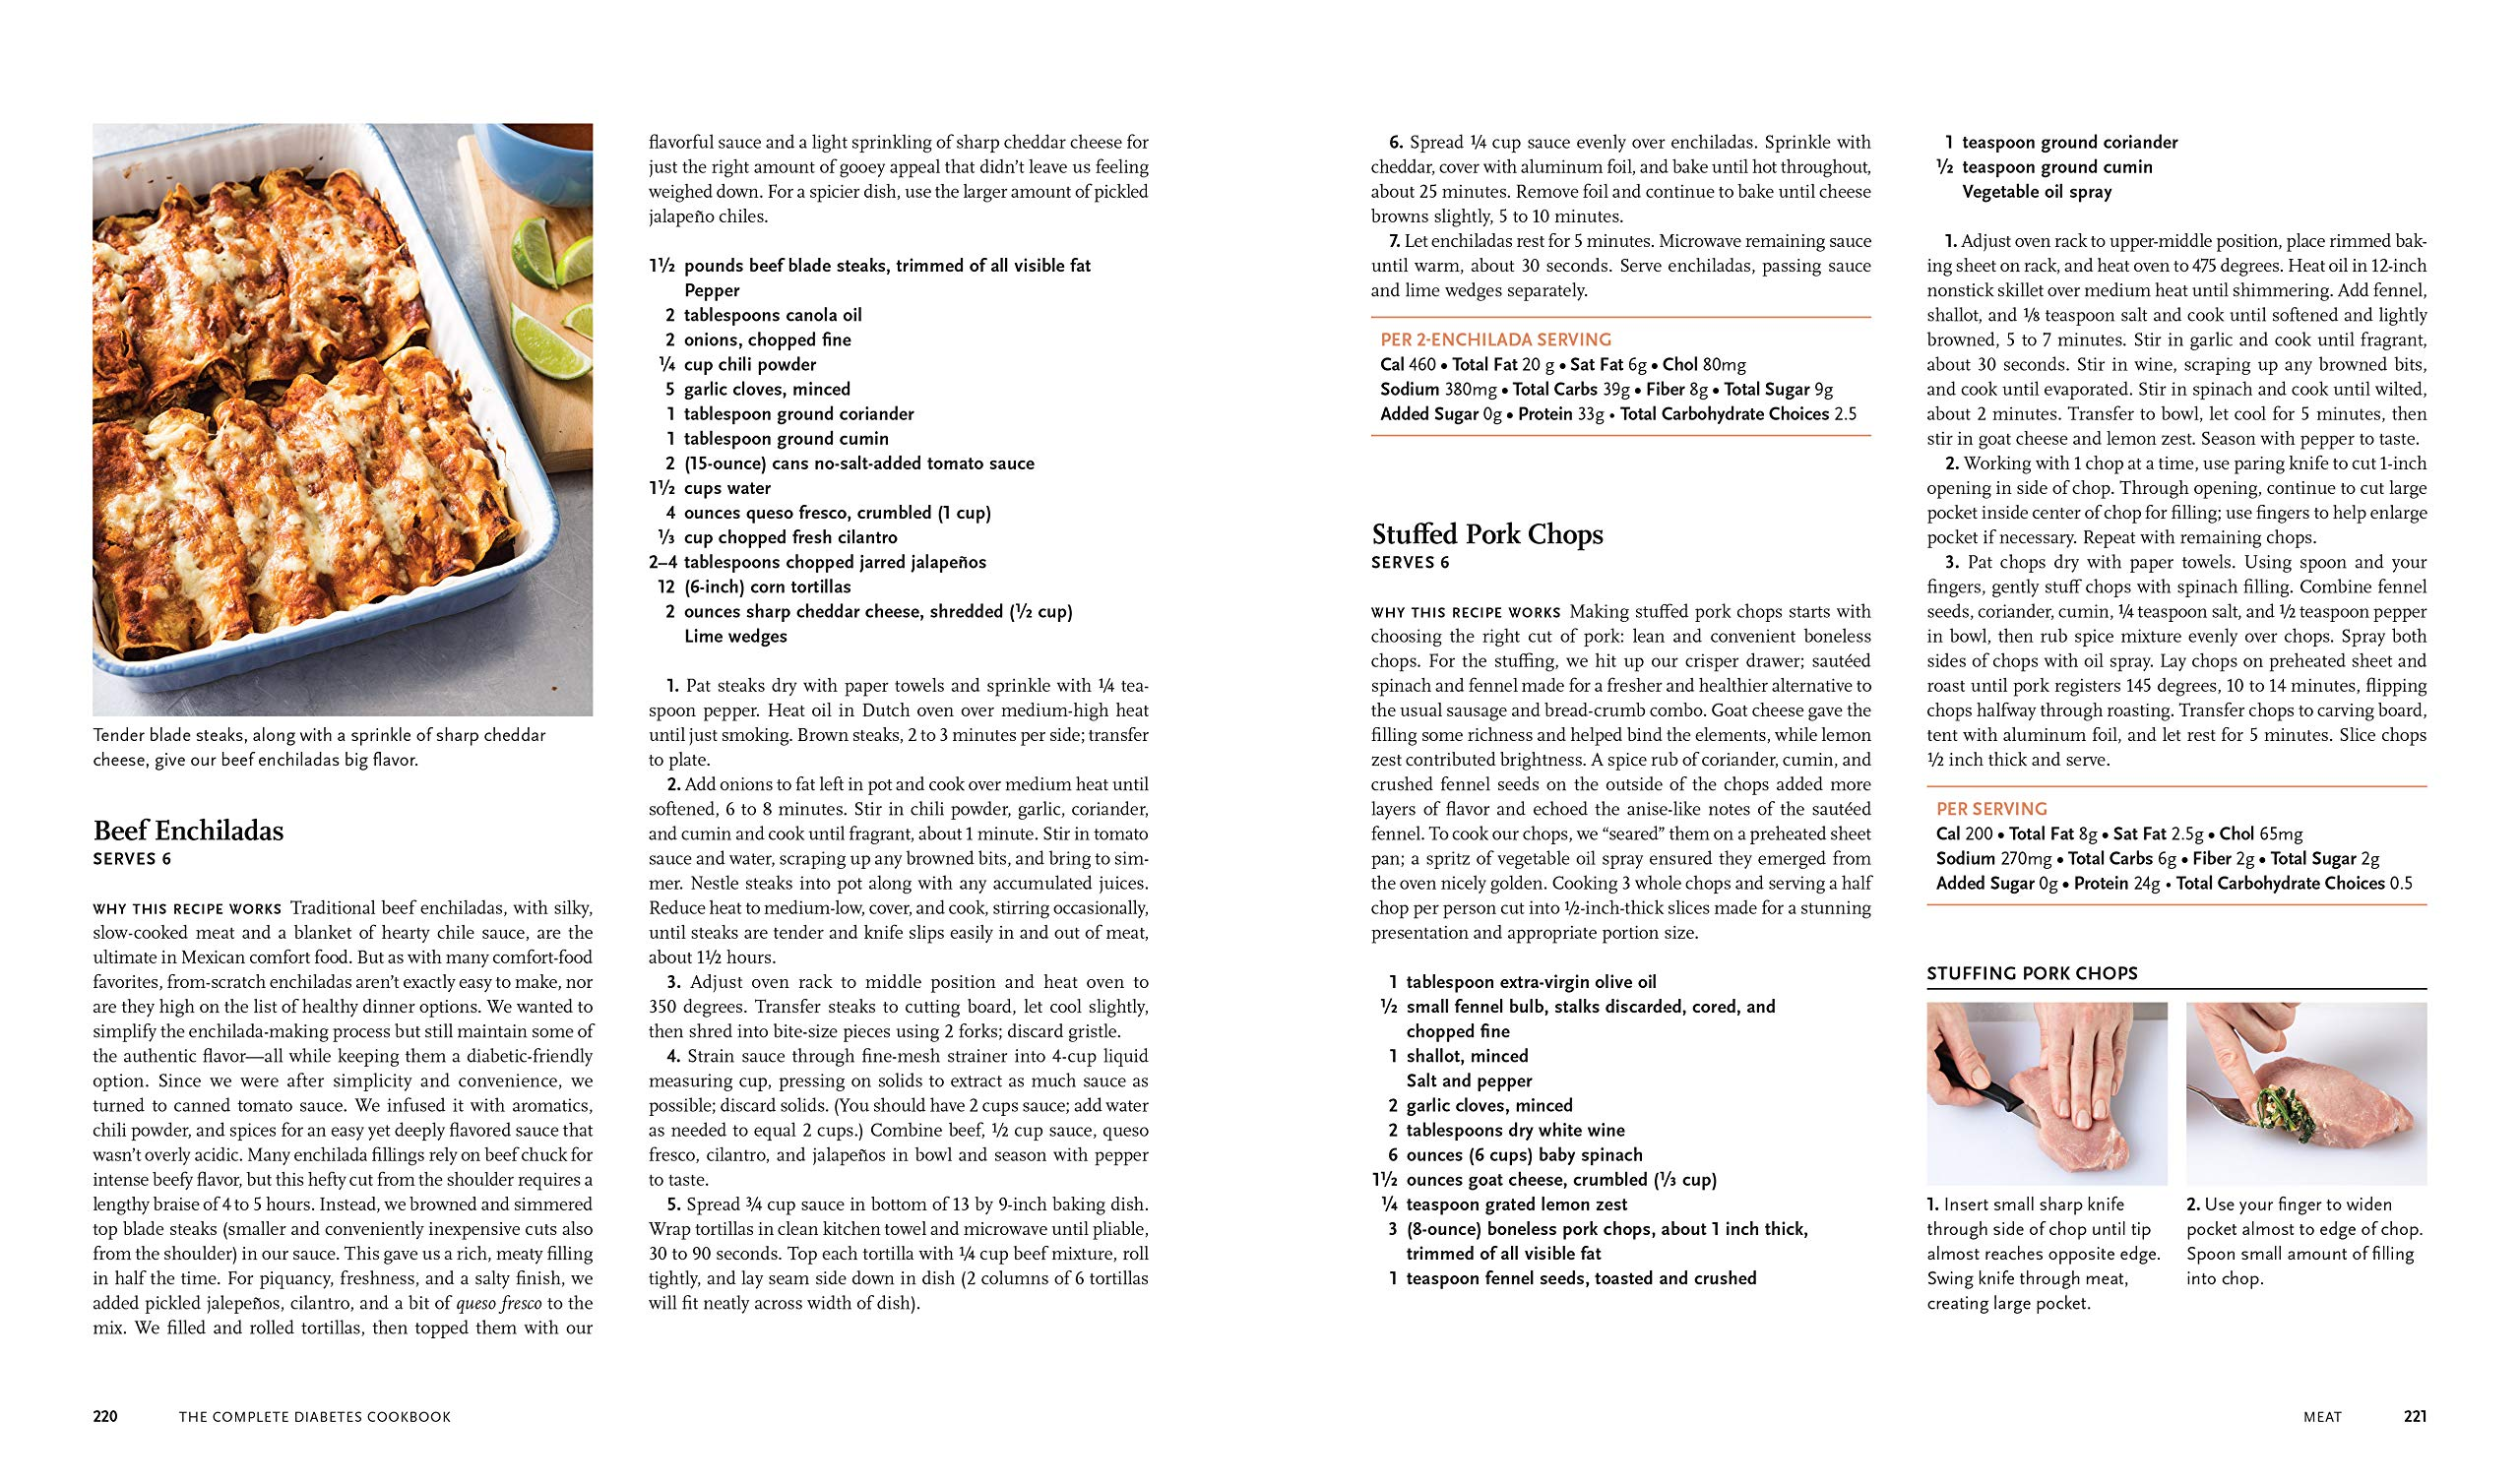 The Complete Diabetes Cookbook: The Healthy Way to Eat the